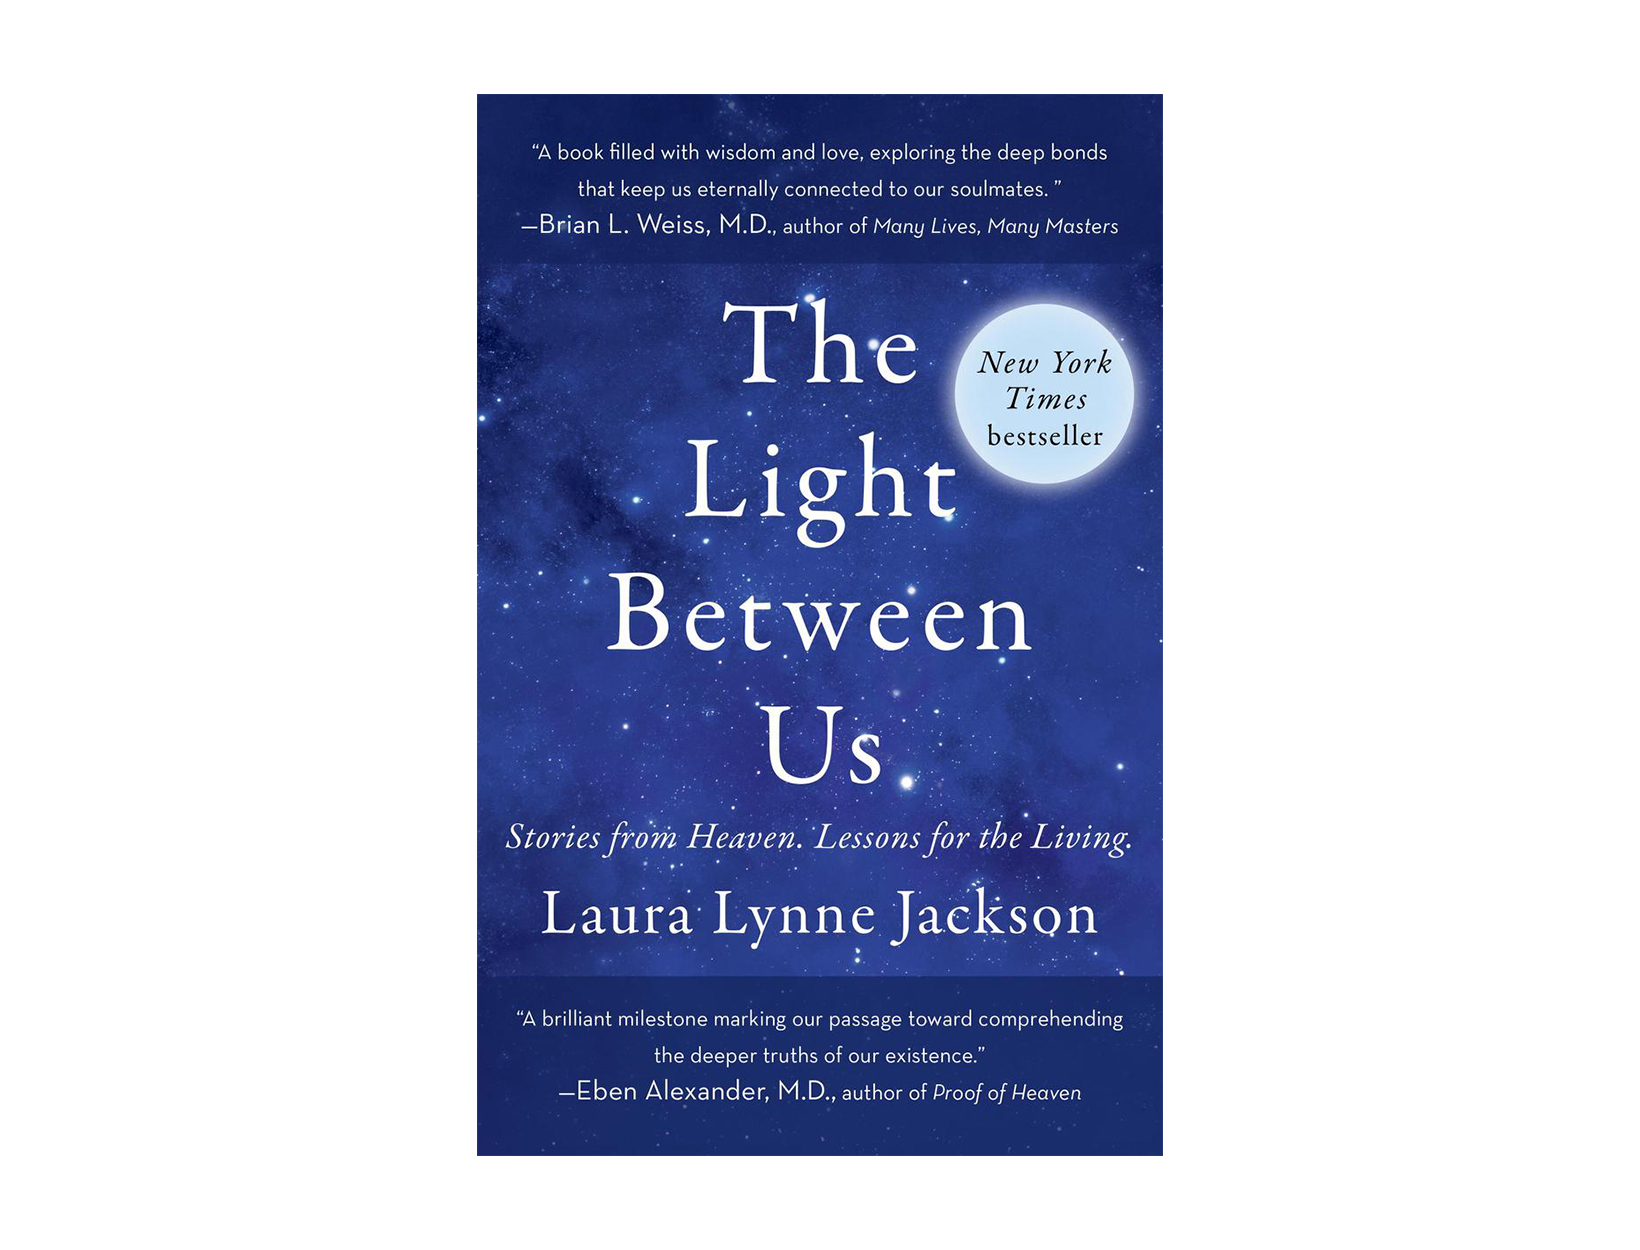 The Light Between Us: Stories from Heaven. Lessons for the Living. by Laura Lynne Jackson